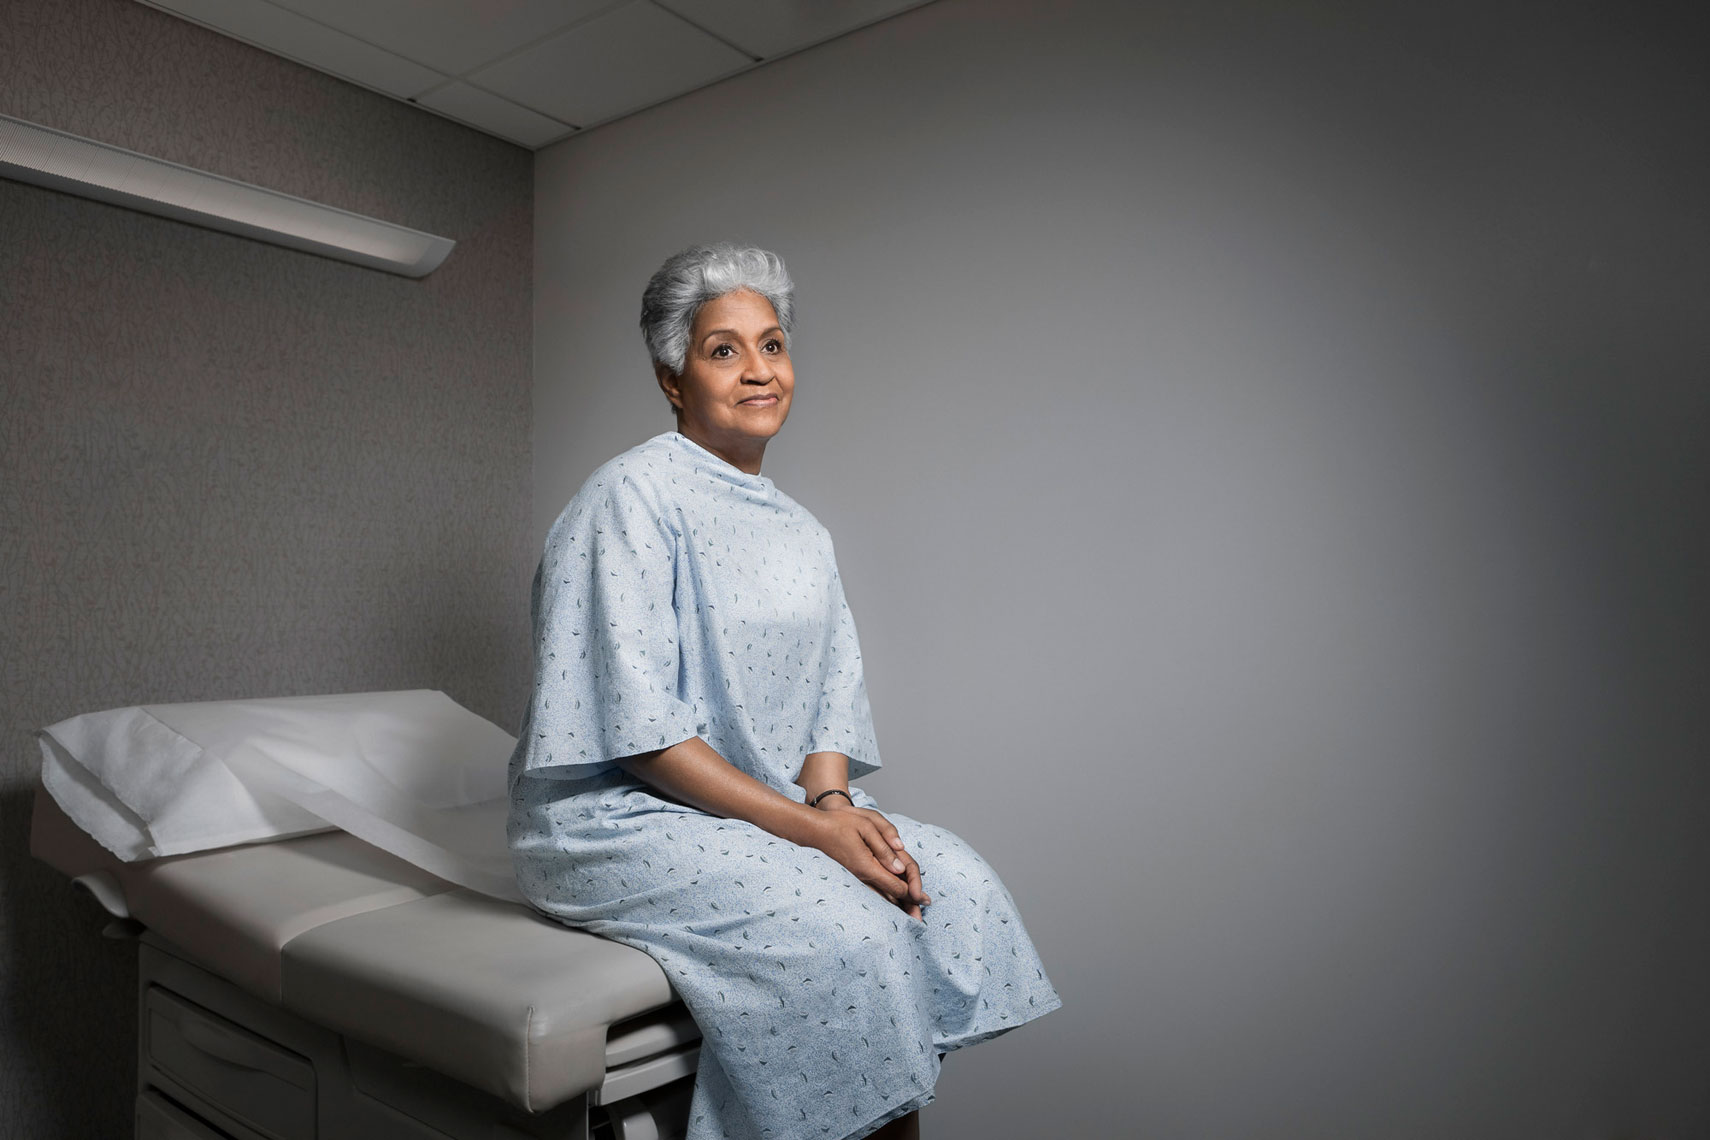 HOSPITAL: Patient Portrait: CORBIS